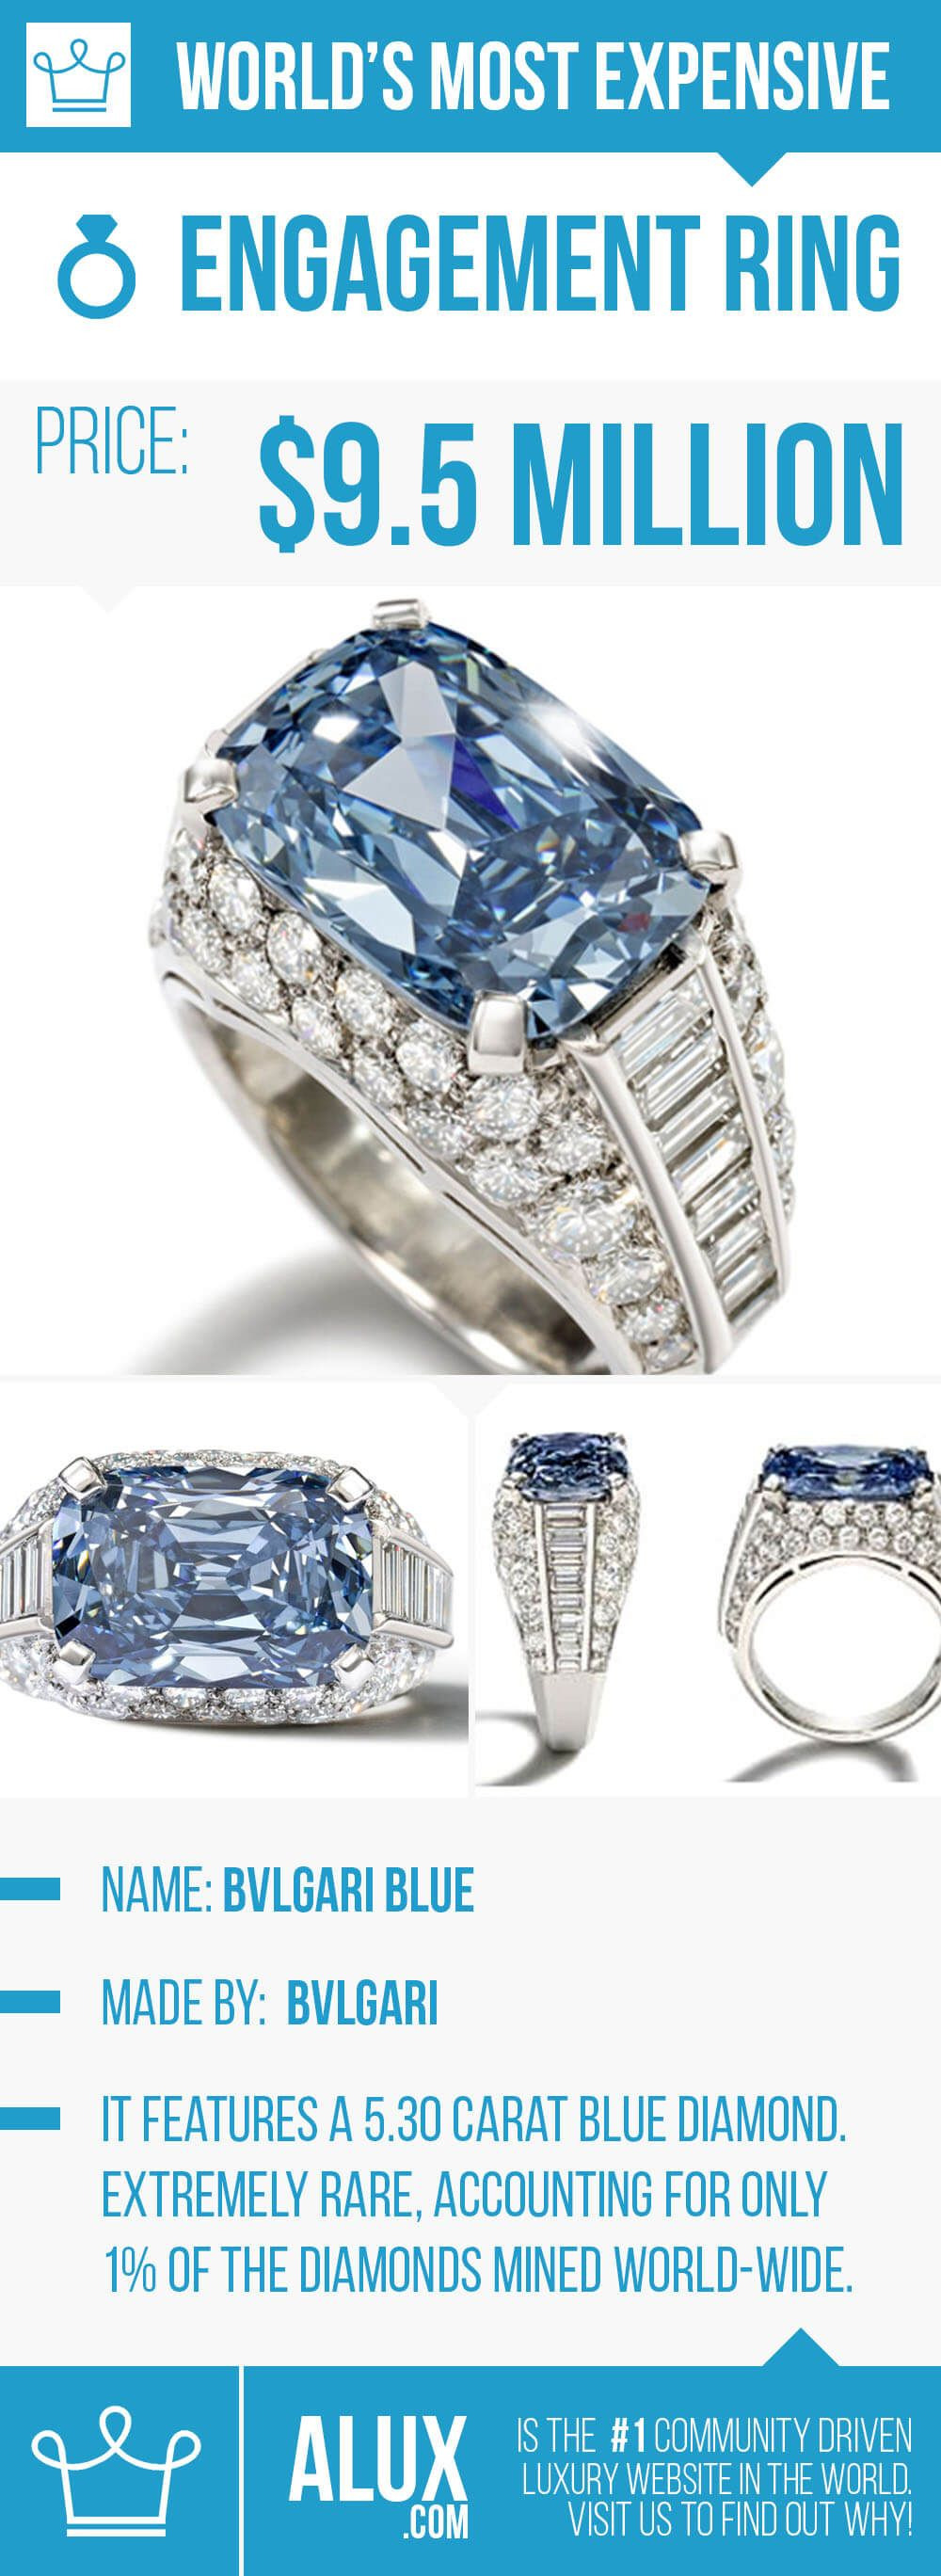 most expensive wedding rings most expensive engagement ring in the world blue diamond picture price alux bvlgari bulgari blue